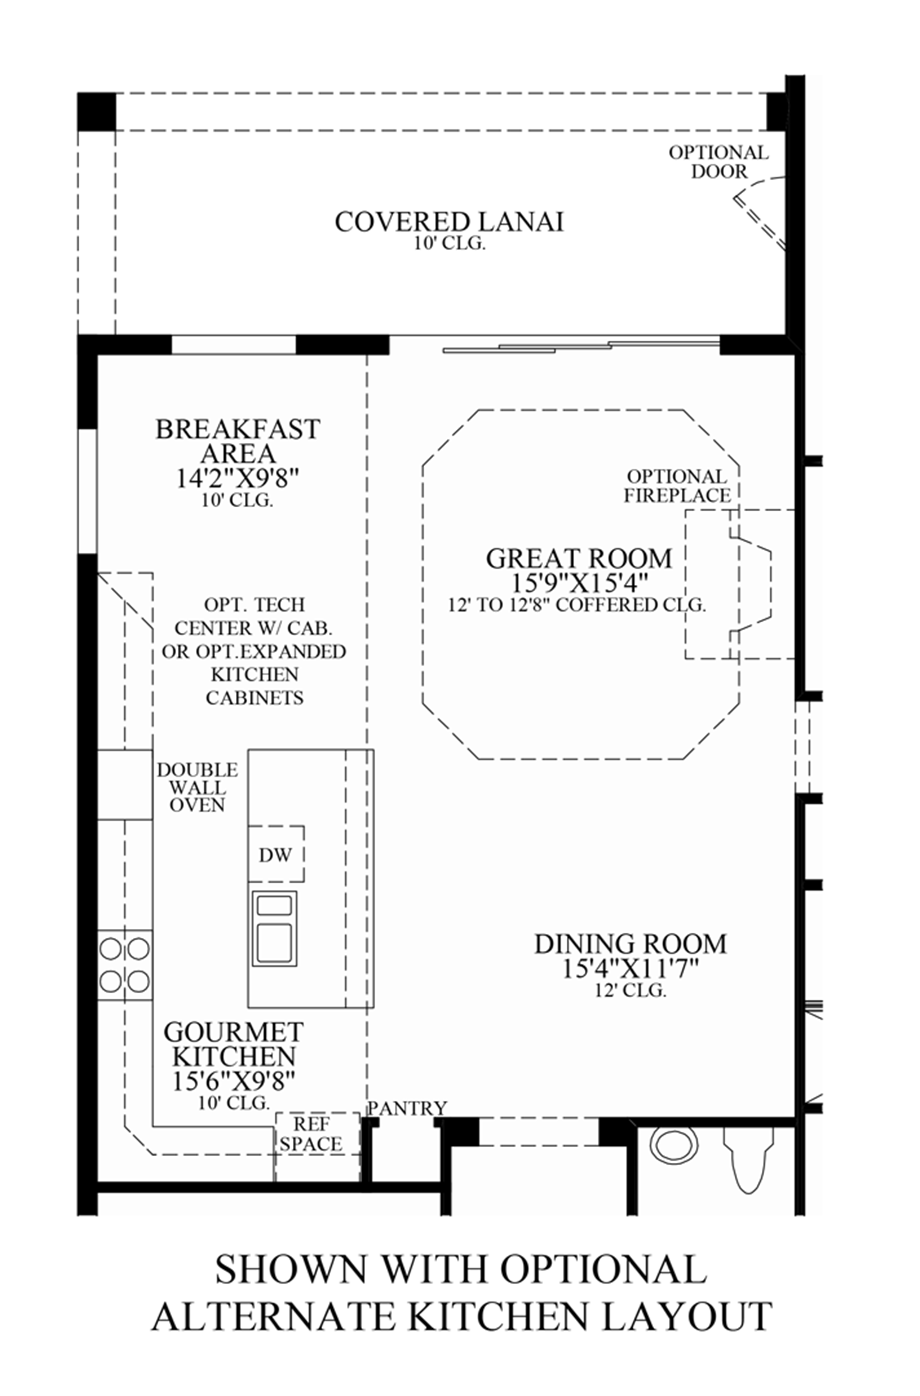 Optional Alternate Kitchen Layout Floor Plan